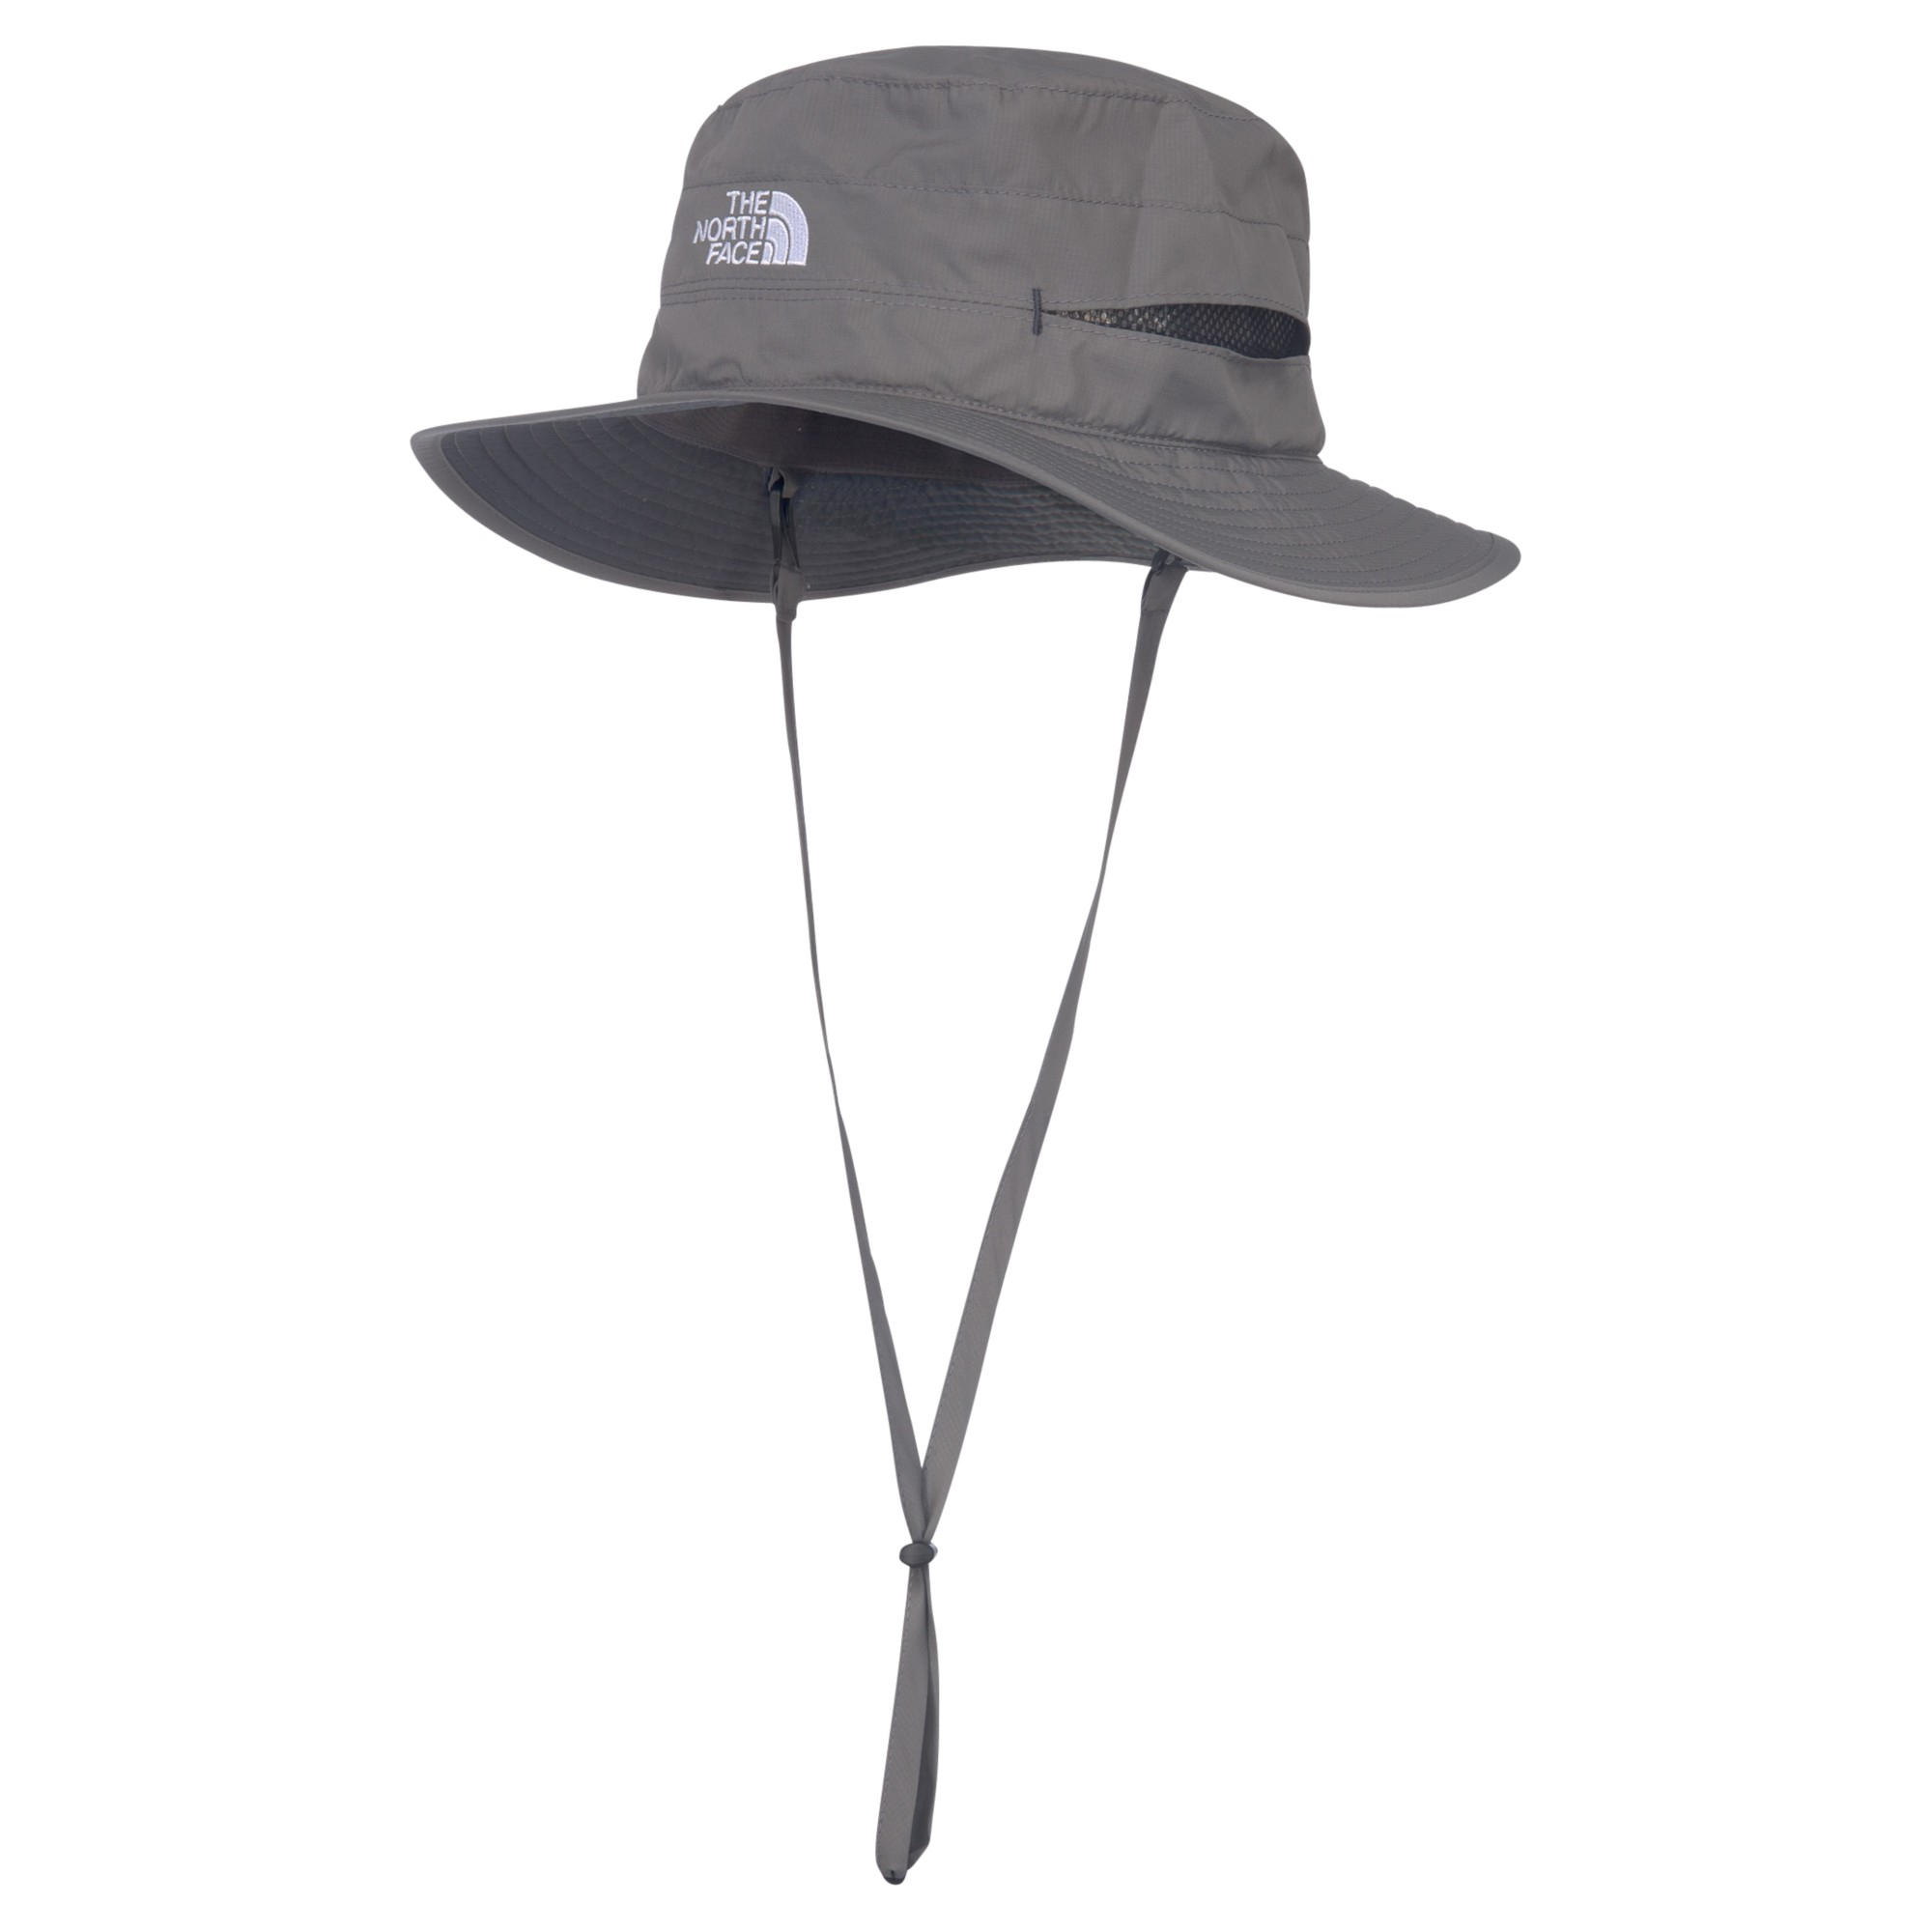 The North Face Bucket Ii Sun Hat in Gray for Men - Lyst 4a377e93f95